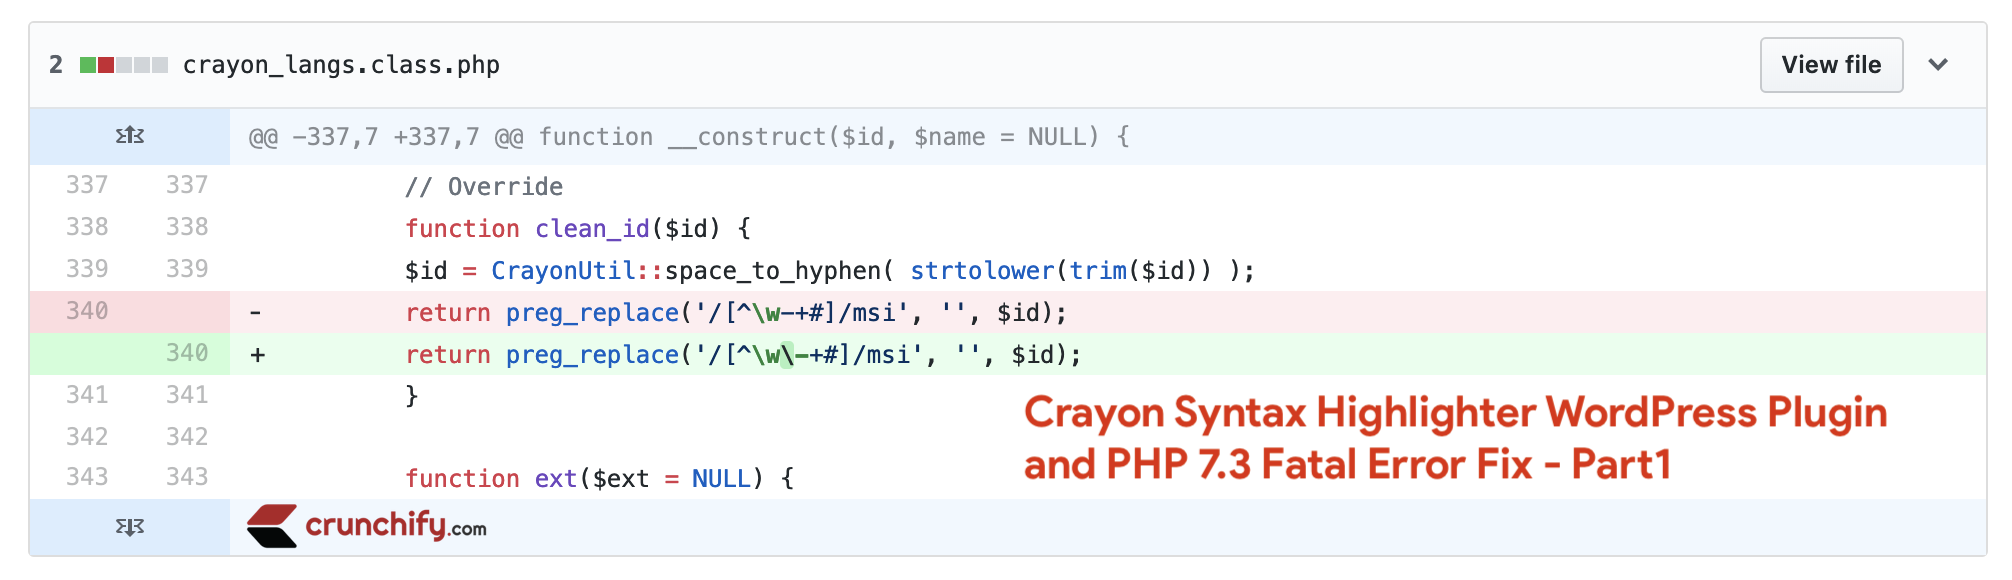 Fix for Crayon Syntax Highlighter WordPress Plugin and PHP